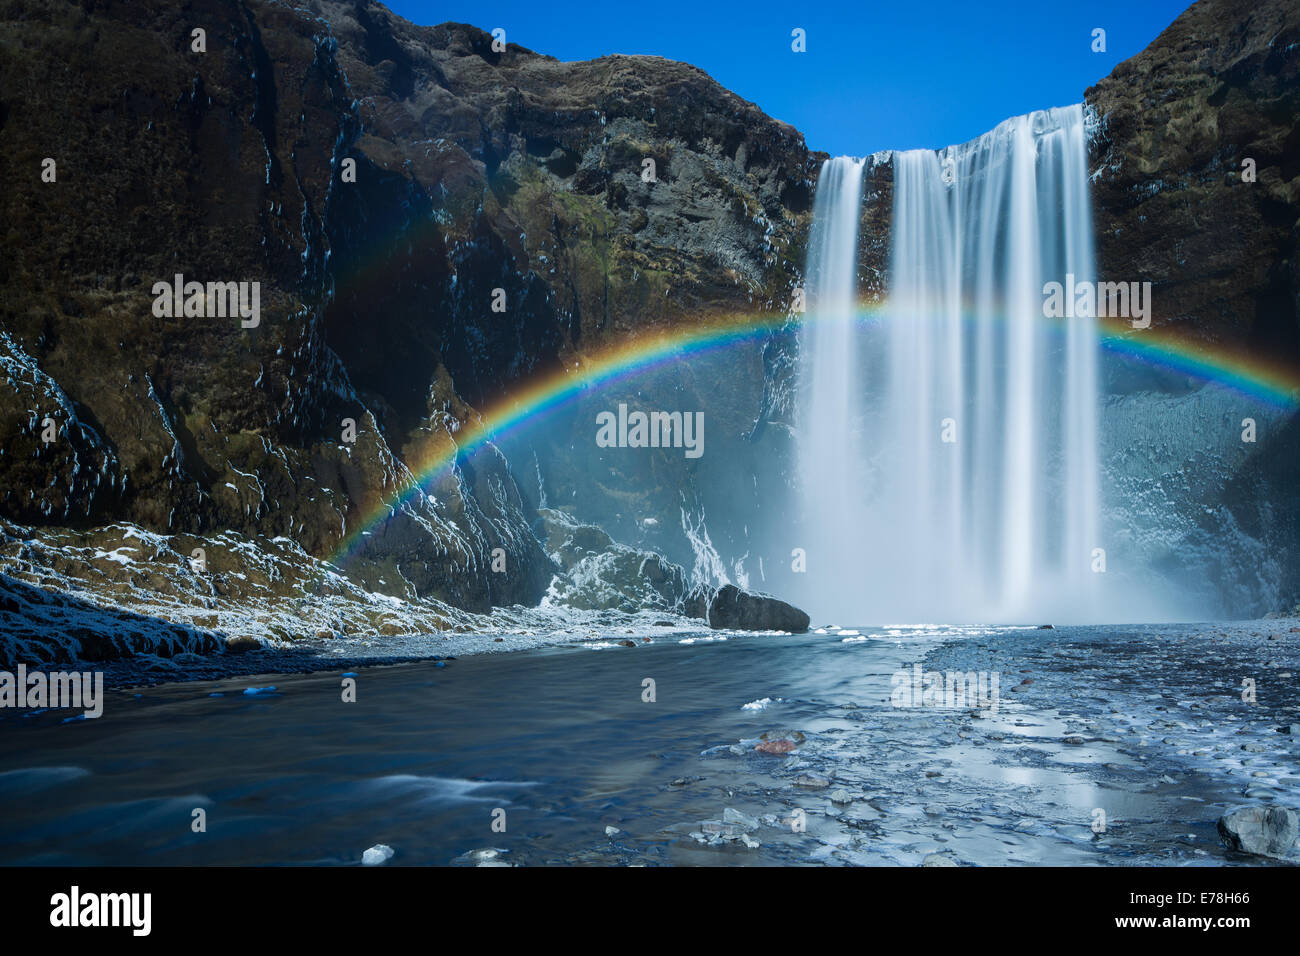 a rainbow at Skógafoss, southern Iceland - Stock Image